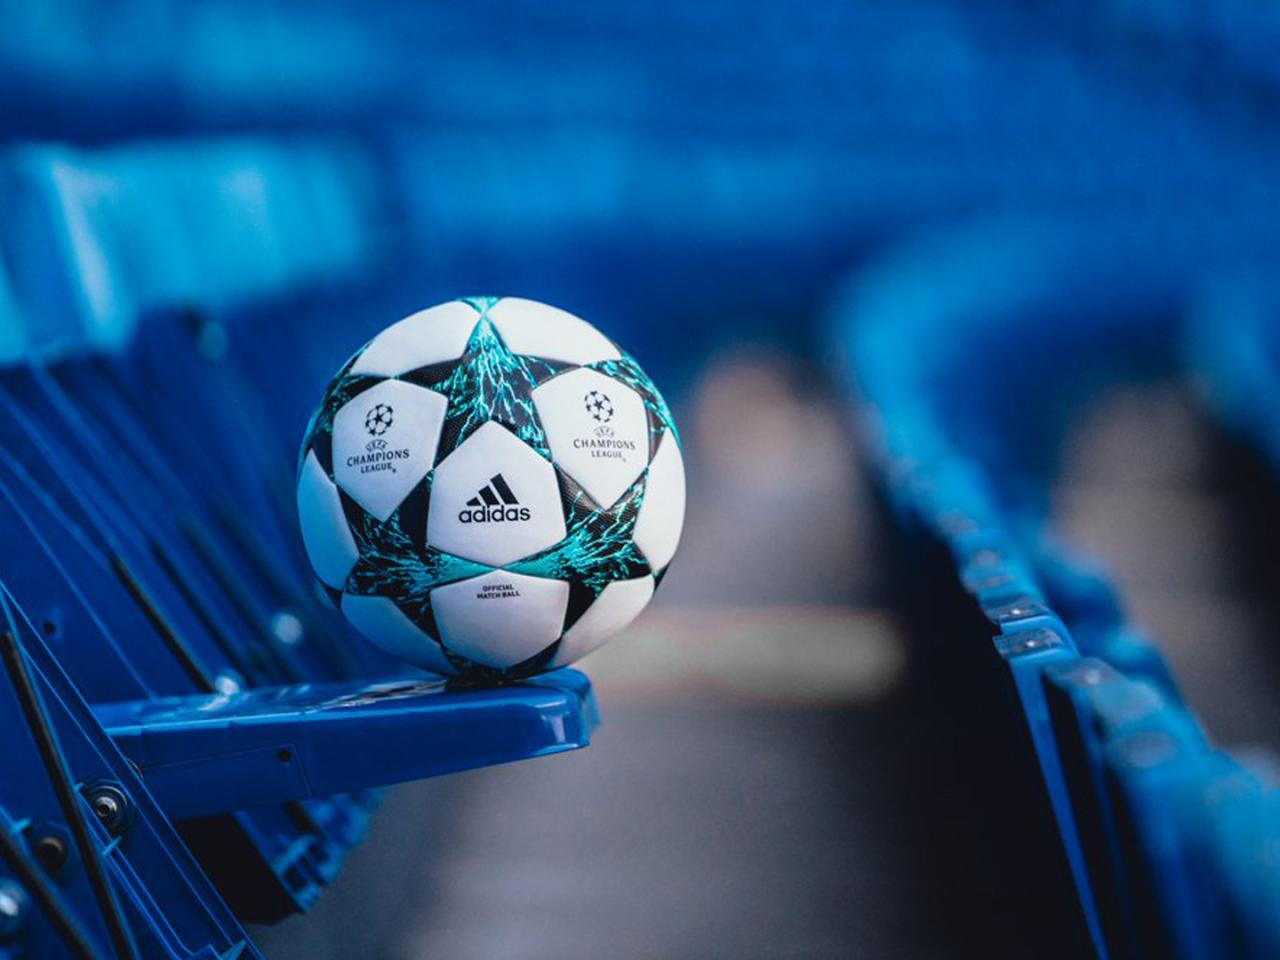 Uefa Champions League 2017 18 Ball Picture For Wallpaper